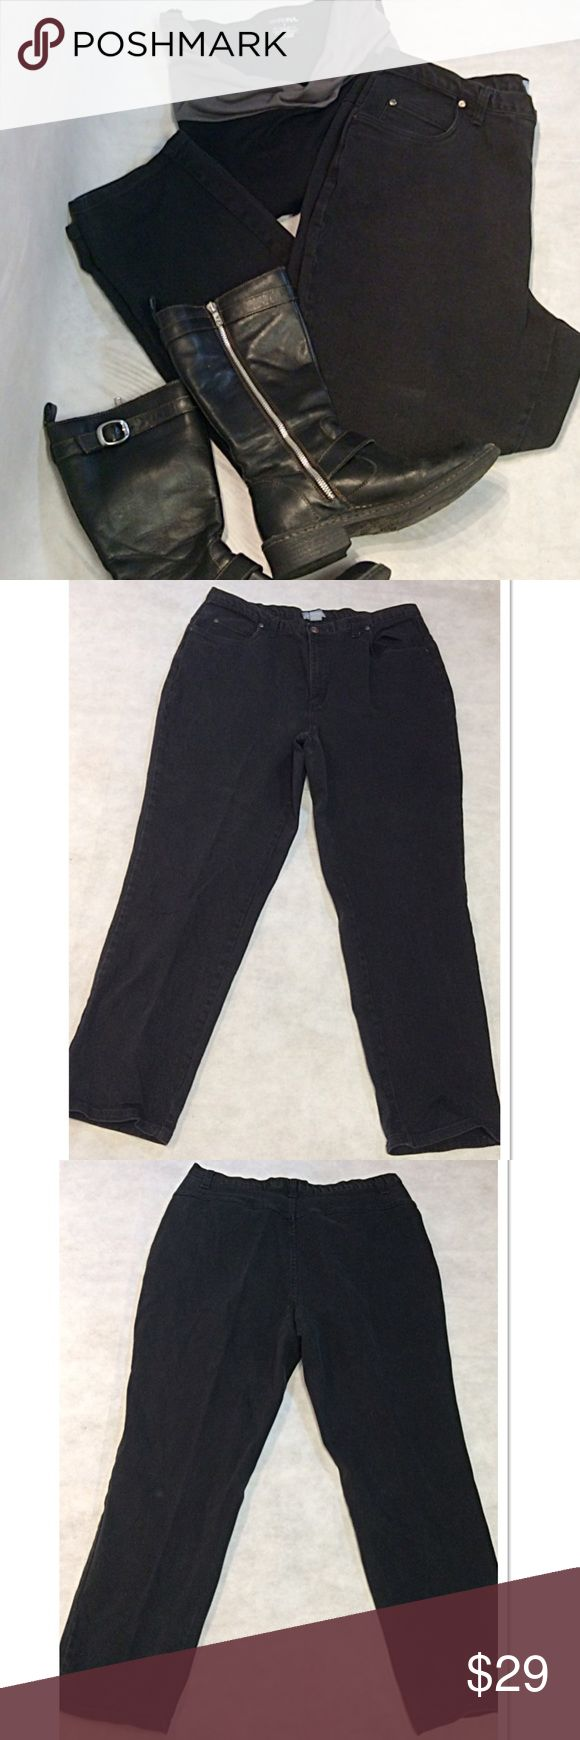 SZ 18W LIZ & ME BLACK DENIM JEANS Great pair of jeans, boot cut and no back pockets. Gently used. See pic for material content Liz Claiborne Jeans Boot Cut